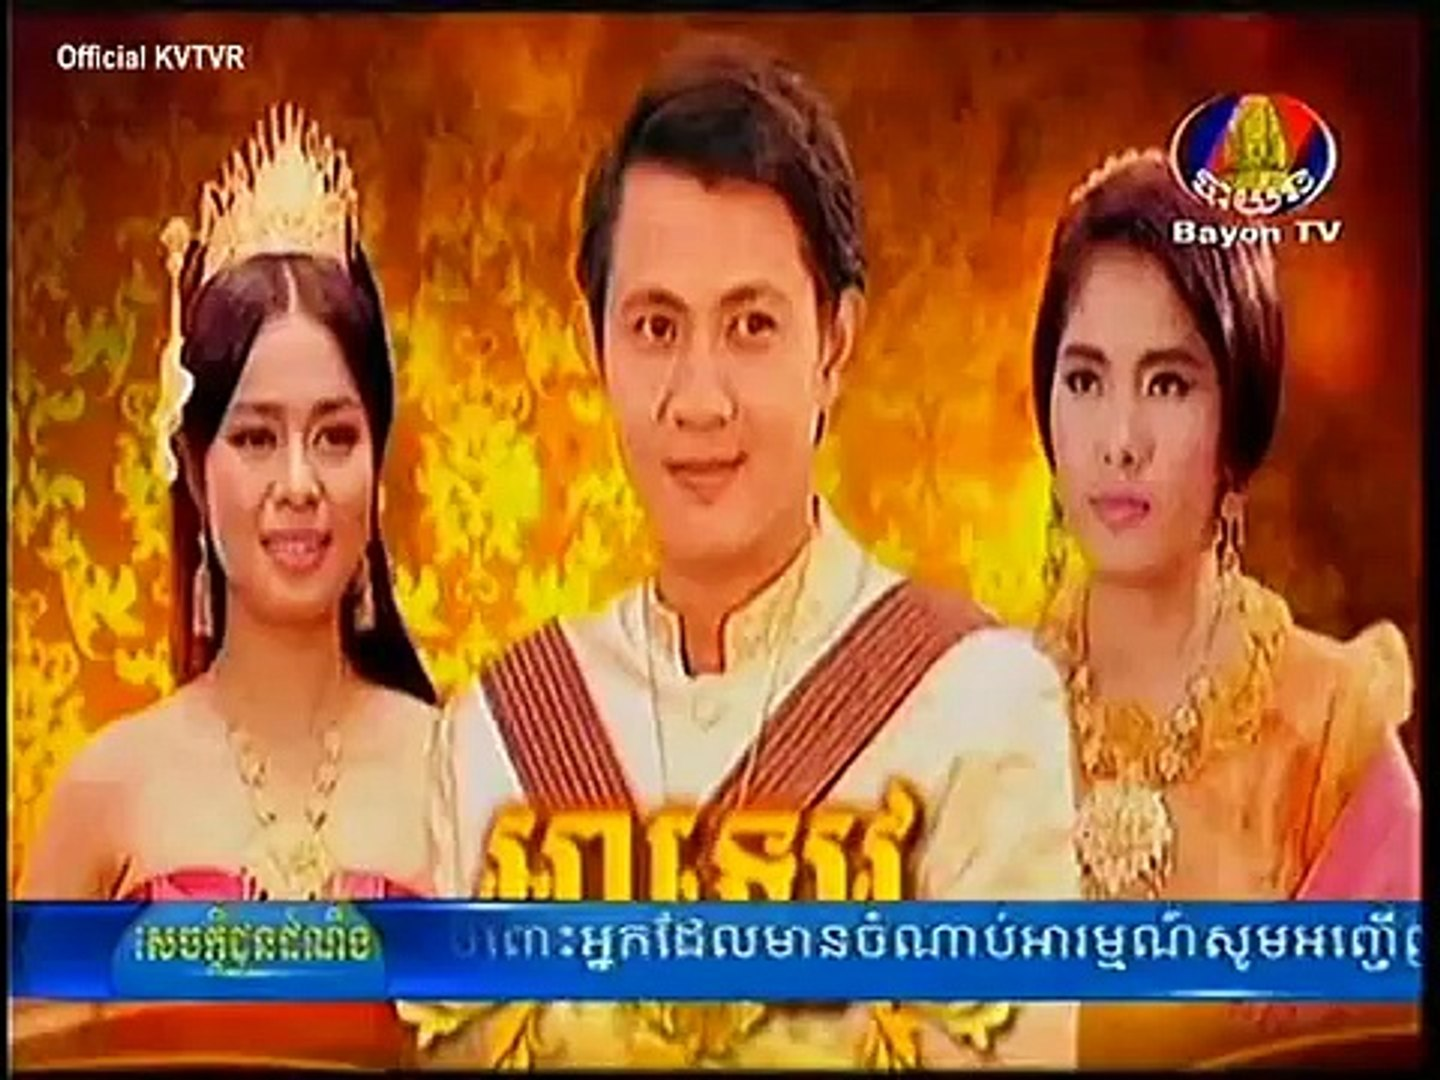 Khmer movie comedy 2015,A Lev Ep 10 - អាឡេវ,Khmer Movie Ah Lev (English Subtitles) News Khmer movie